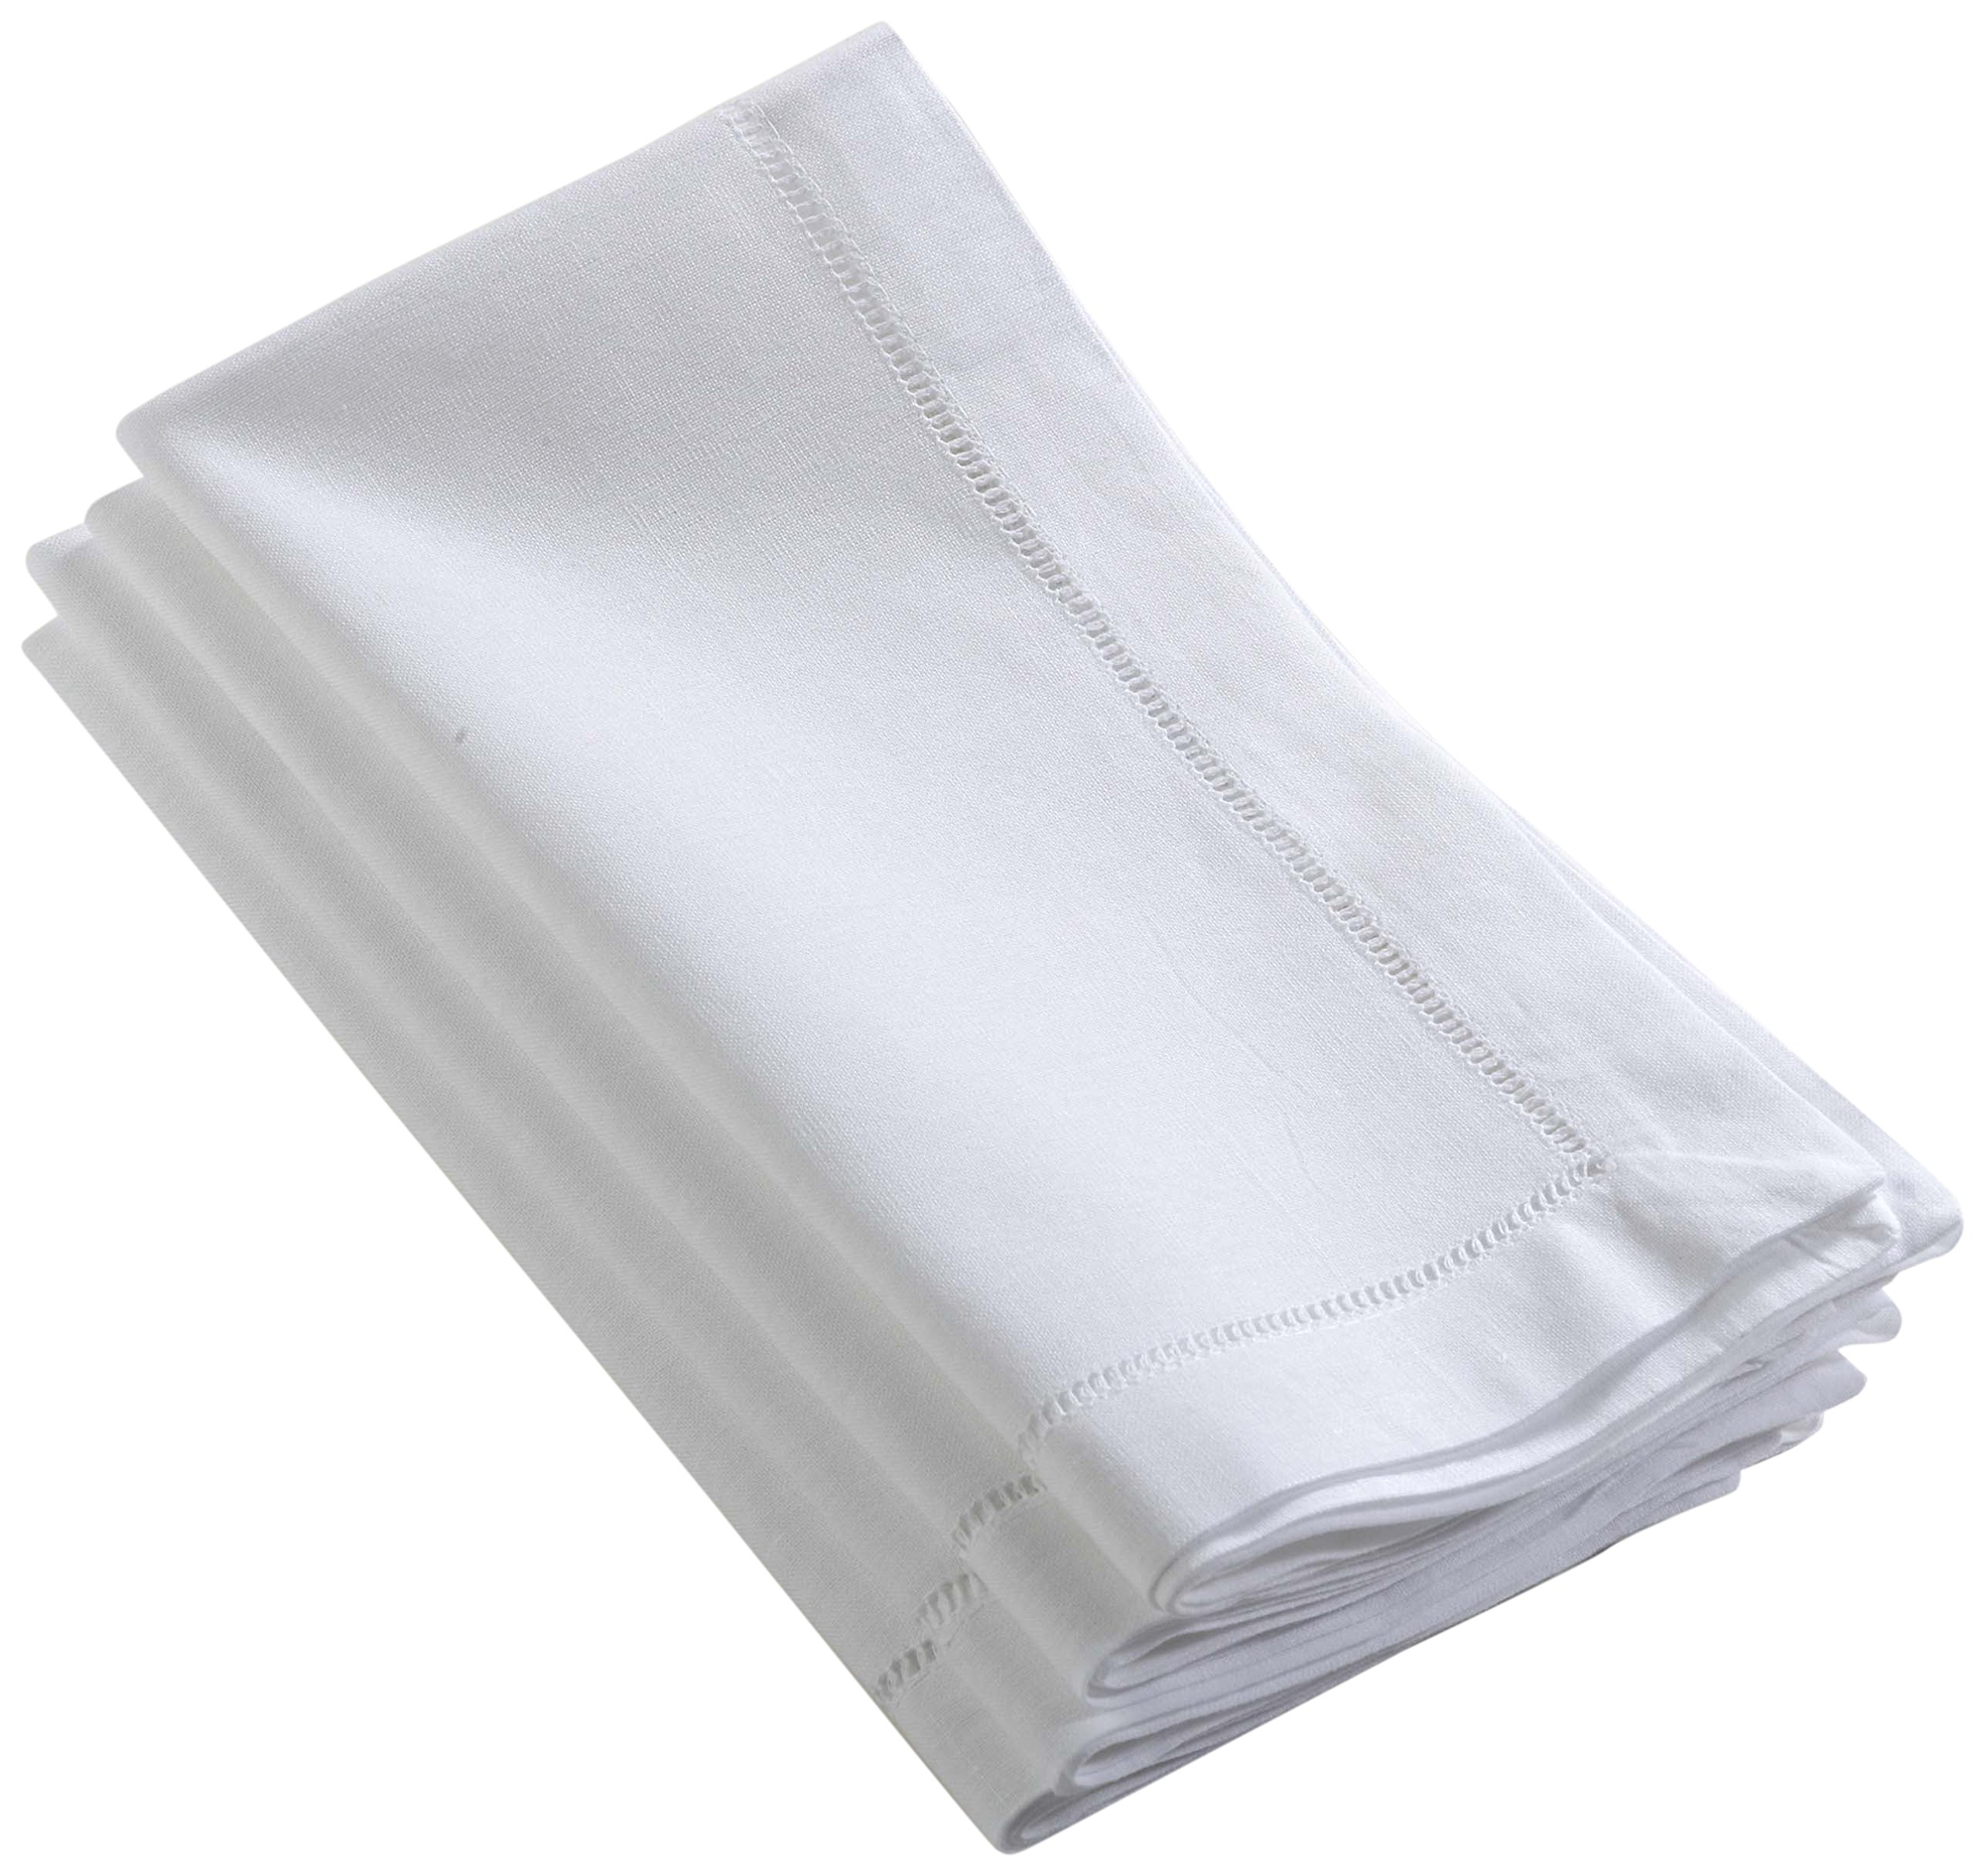 SARO LIFESTYLE 6100C.W20S 24/7 Everyday Collection Square Napkin, White, 20'' by SARO LIFESTYLE